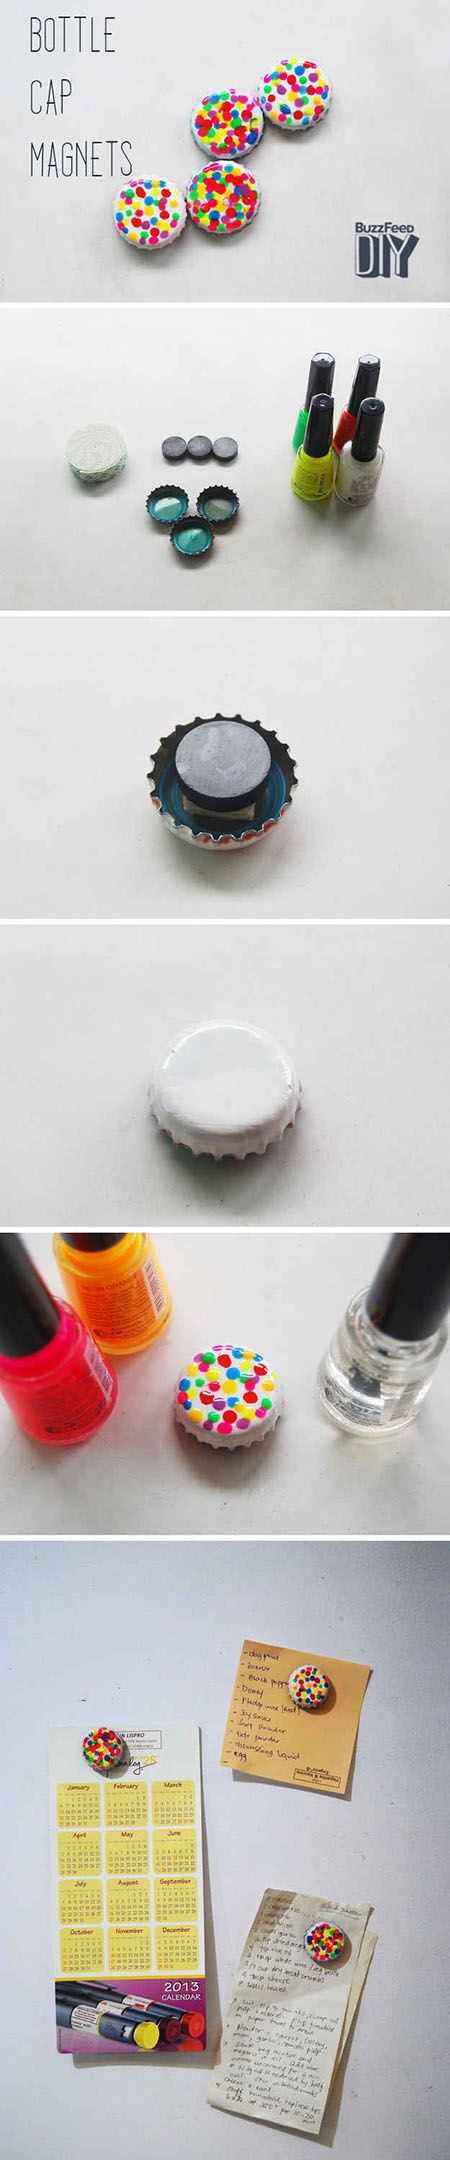 9 Bottle Cap Magnetsa1a42b62b8c